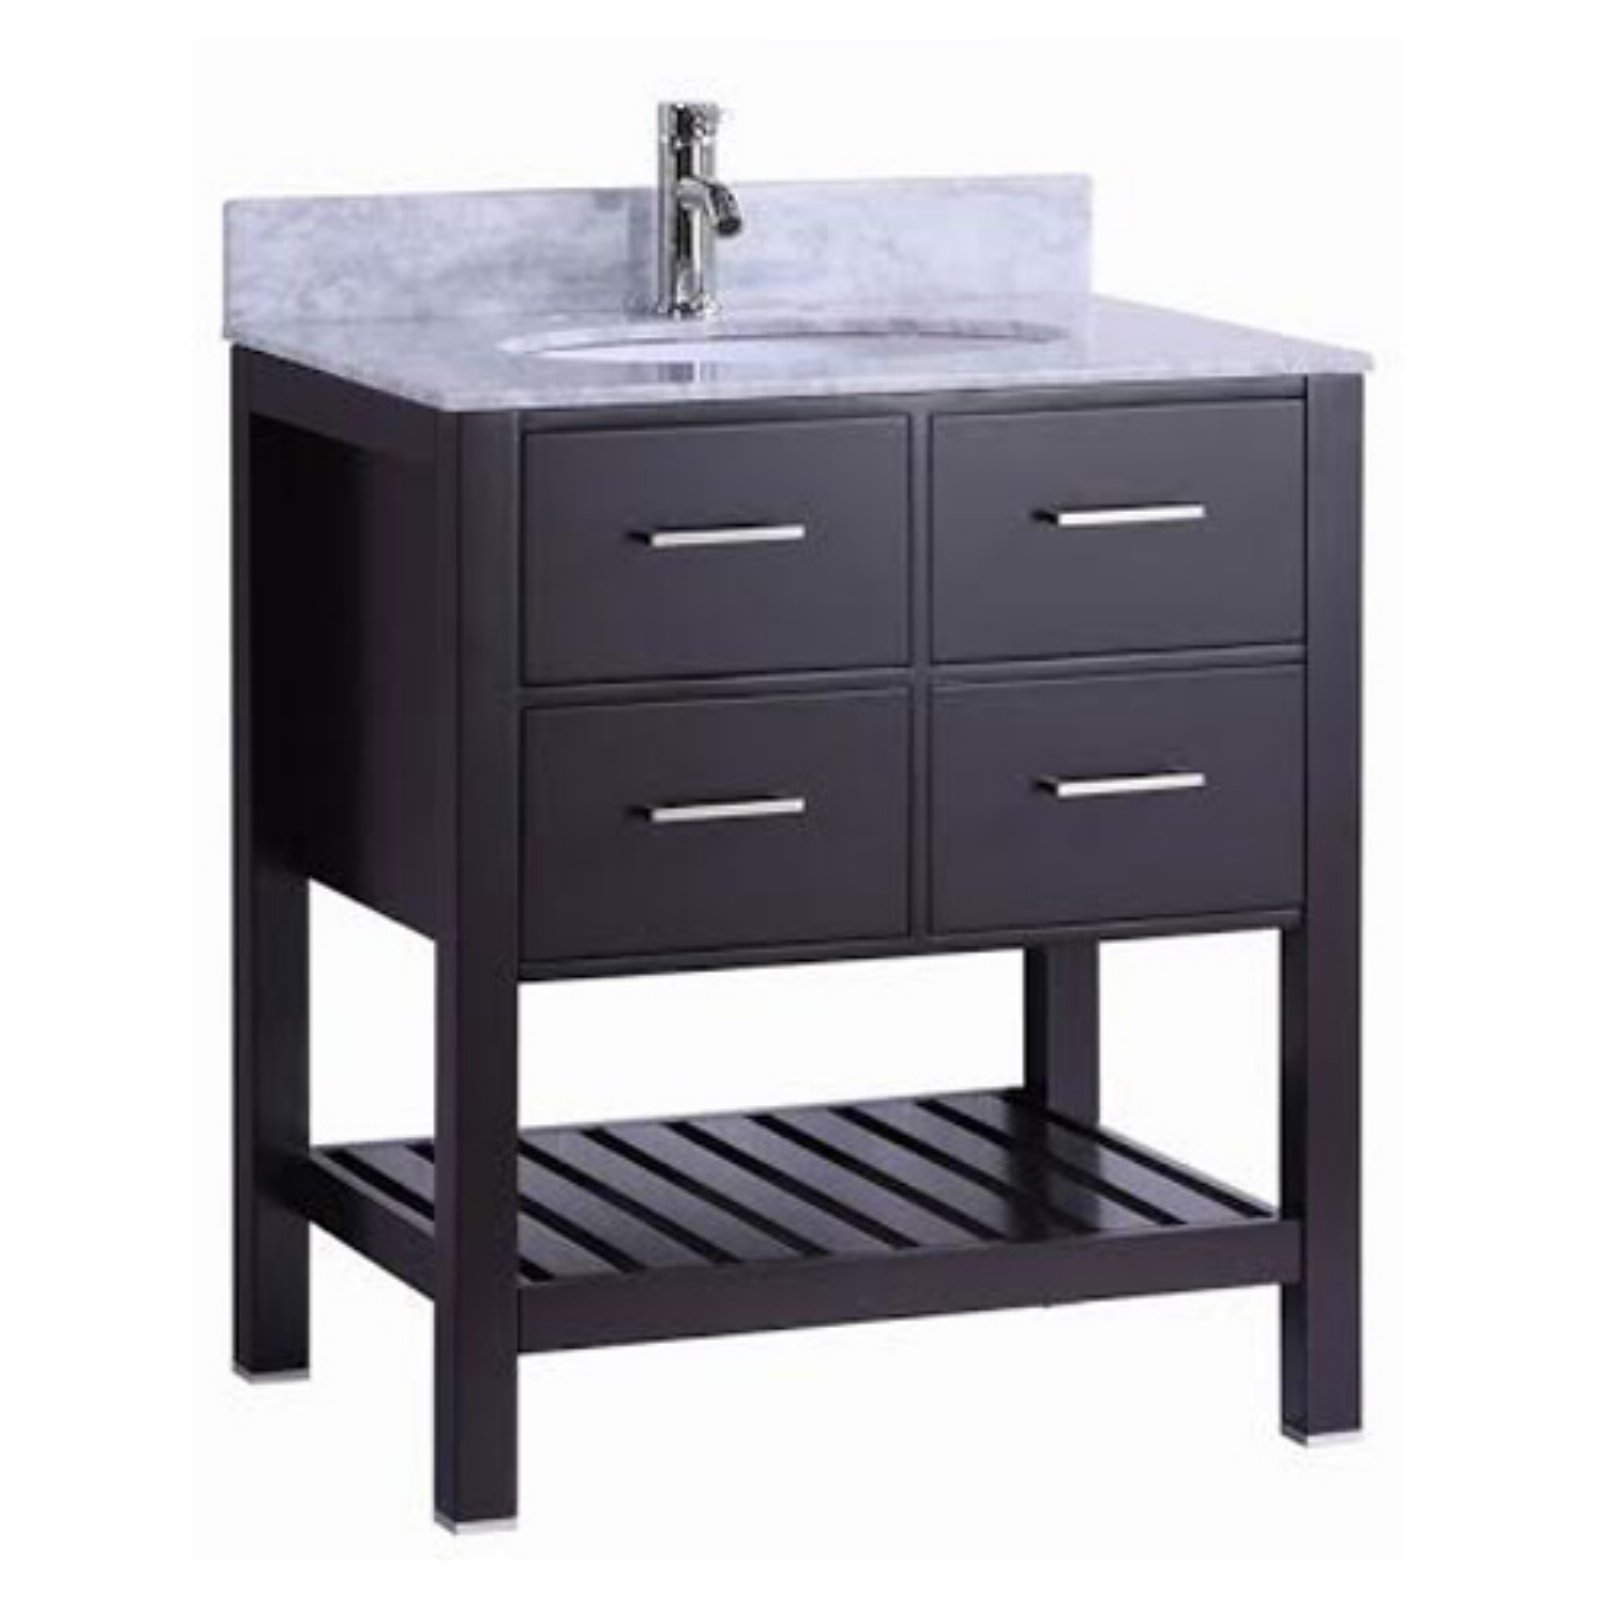 Belvedere 30 in. Single Bathroom Vanity with Marble Top and Backsplash by Overstock